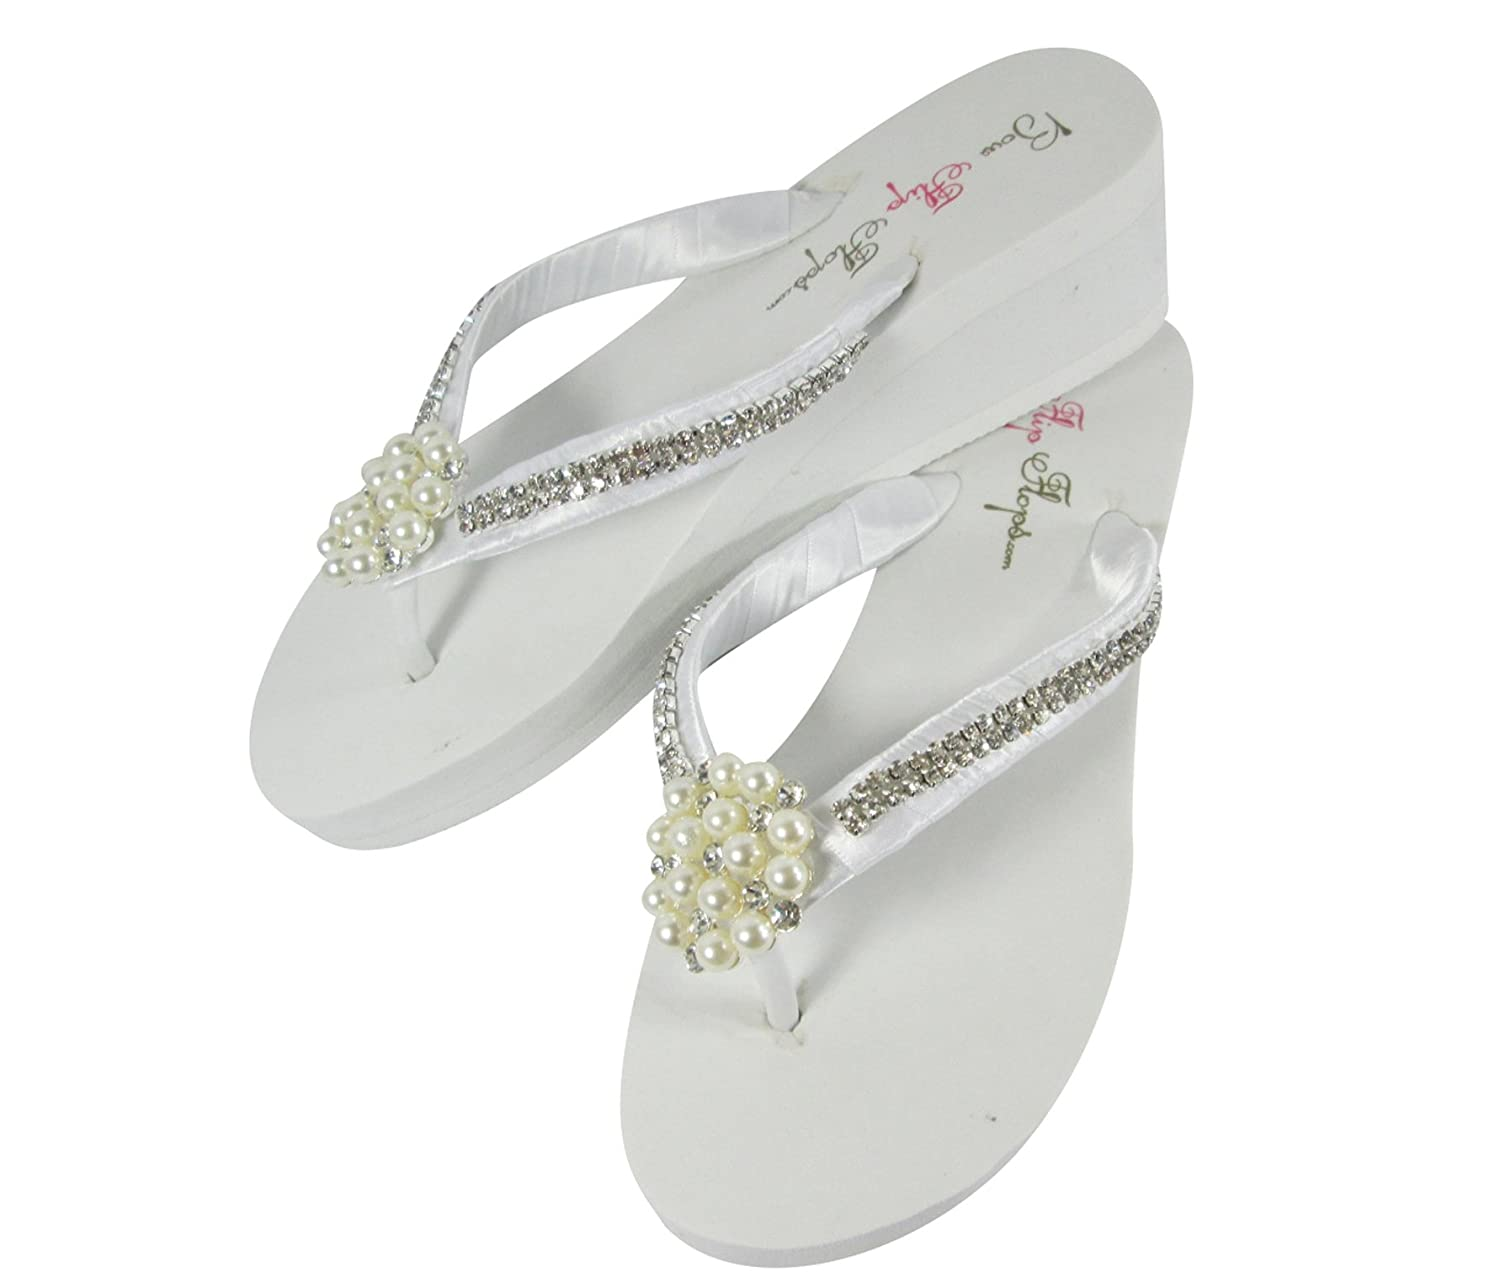 5f4517ab1f1a8 Amazon.com  Ultimate Bling Princess Crown Wedge Flip Flops